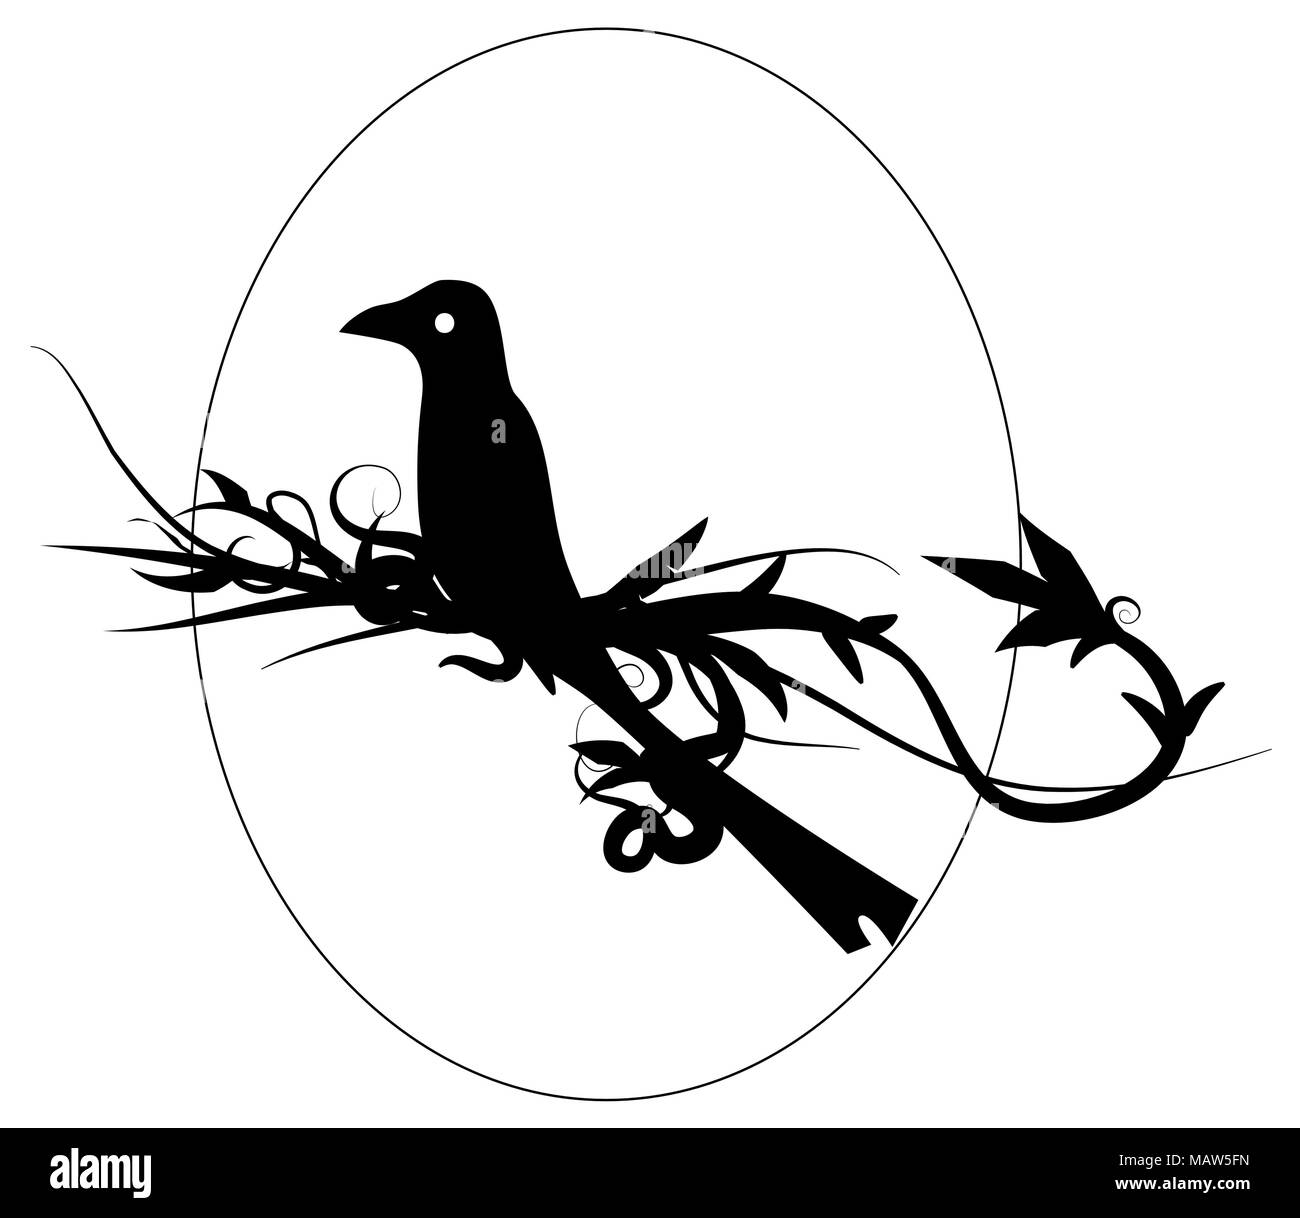 Bird emblem vector design element, black and white, horizontal - Stock Image